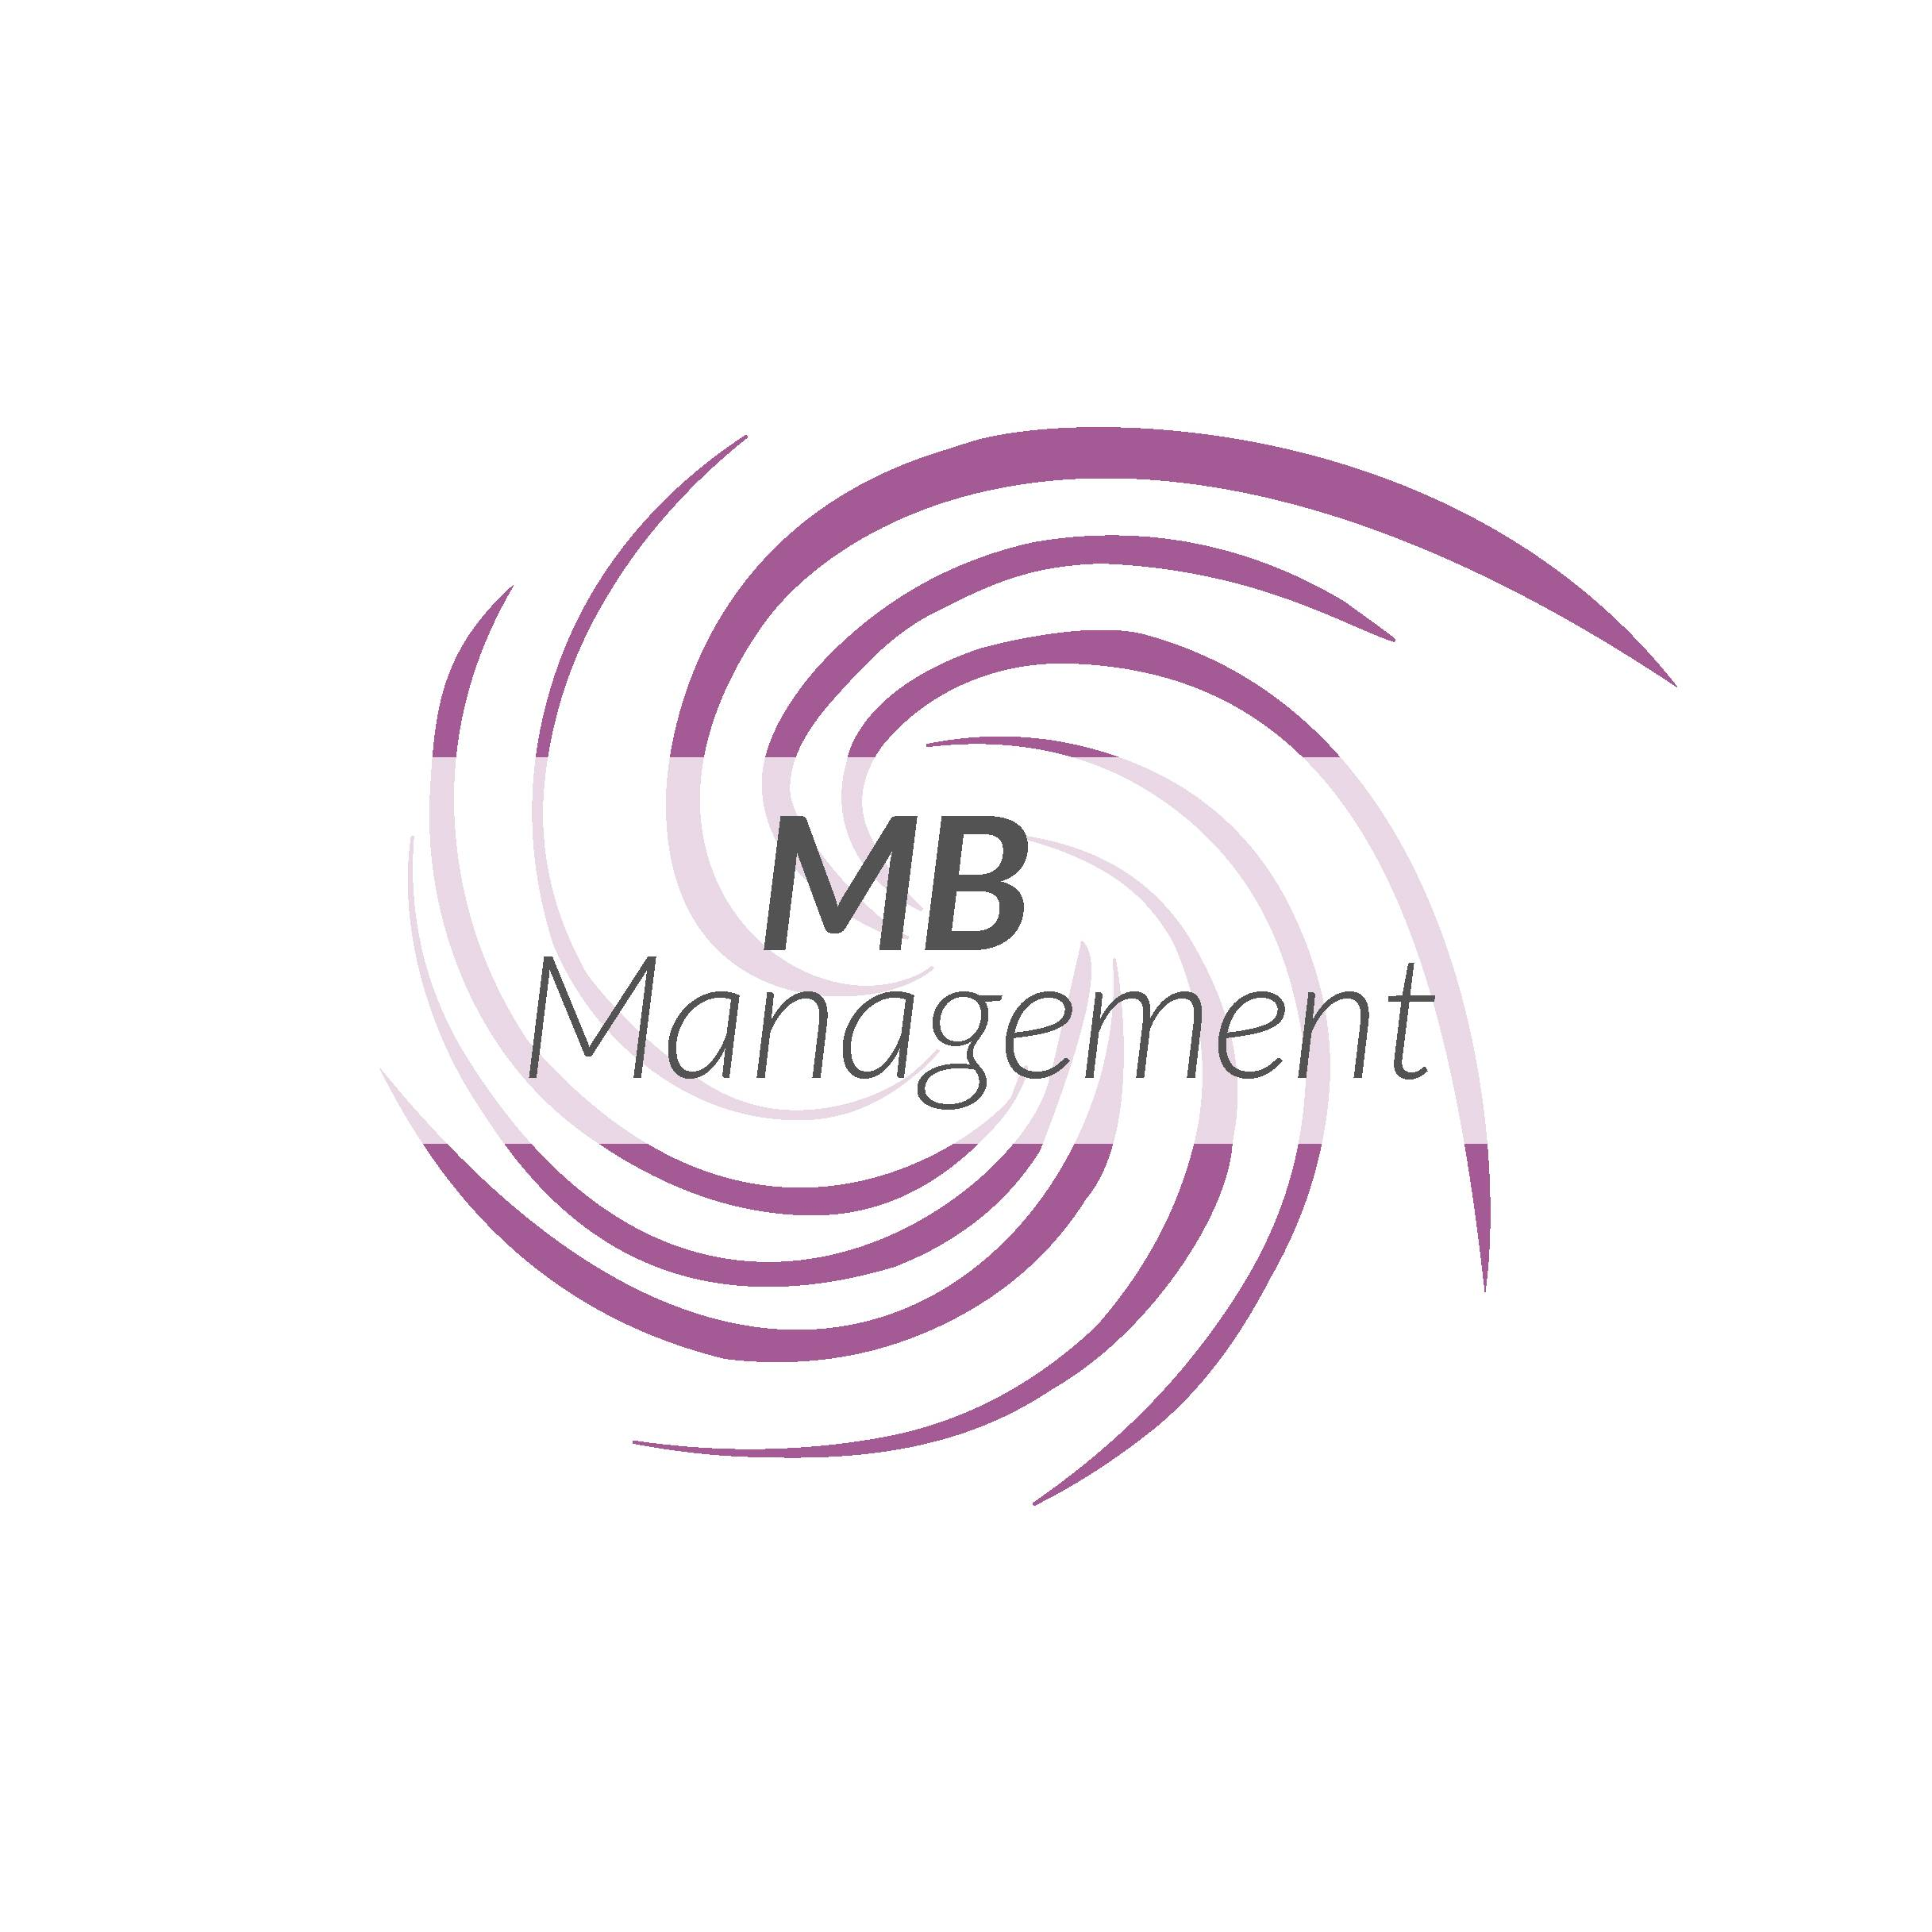 mb-management